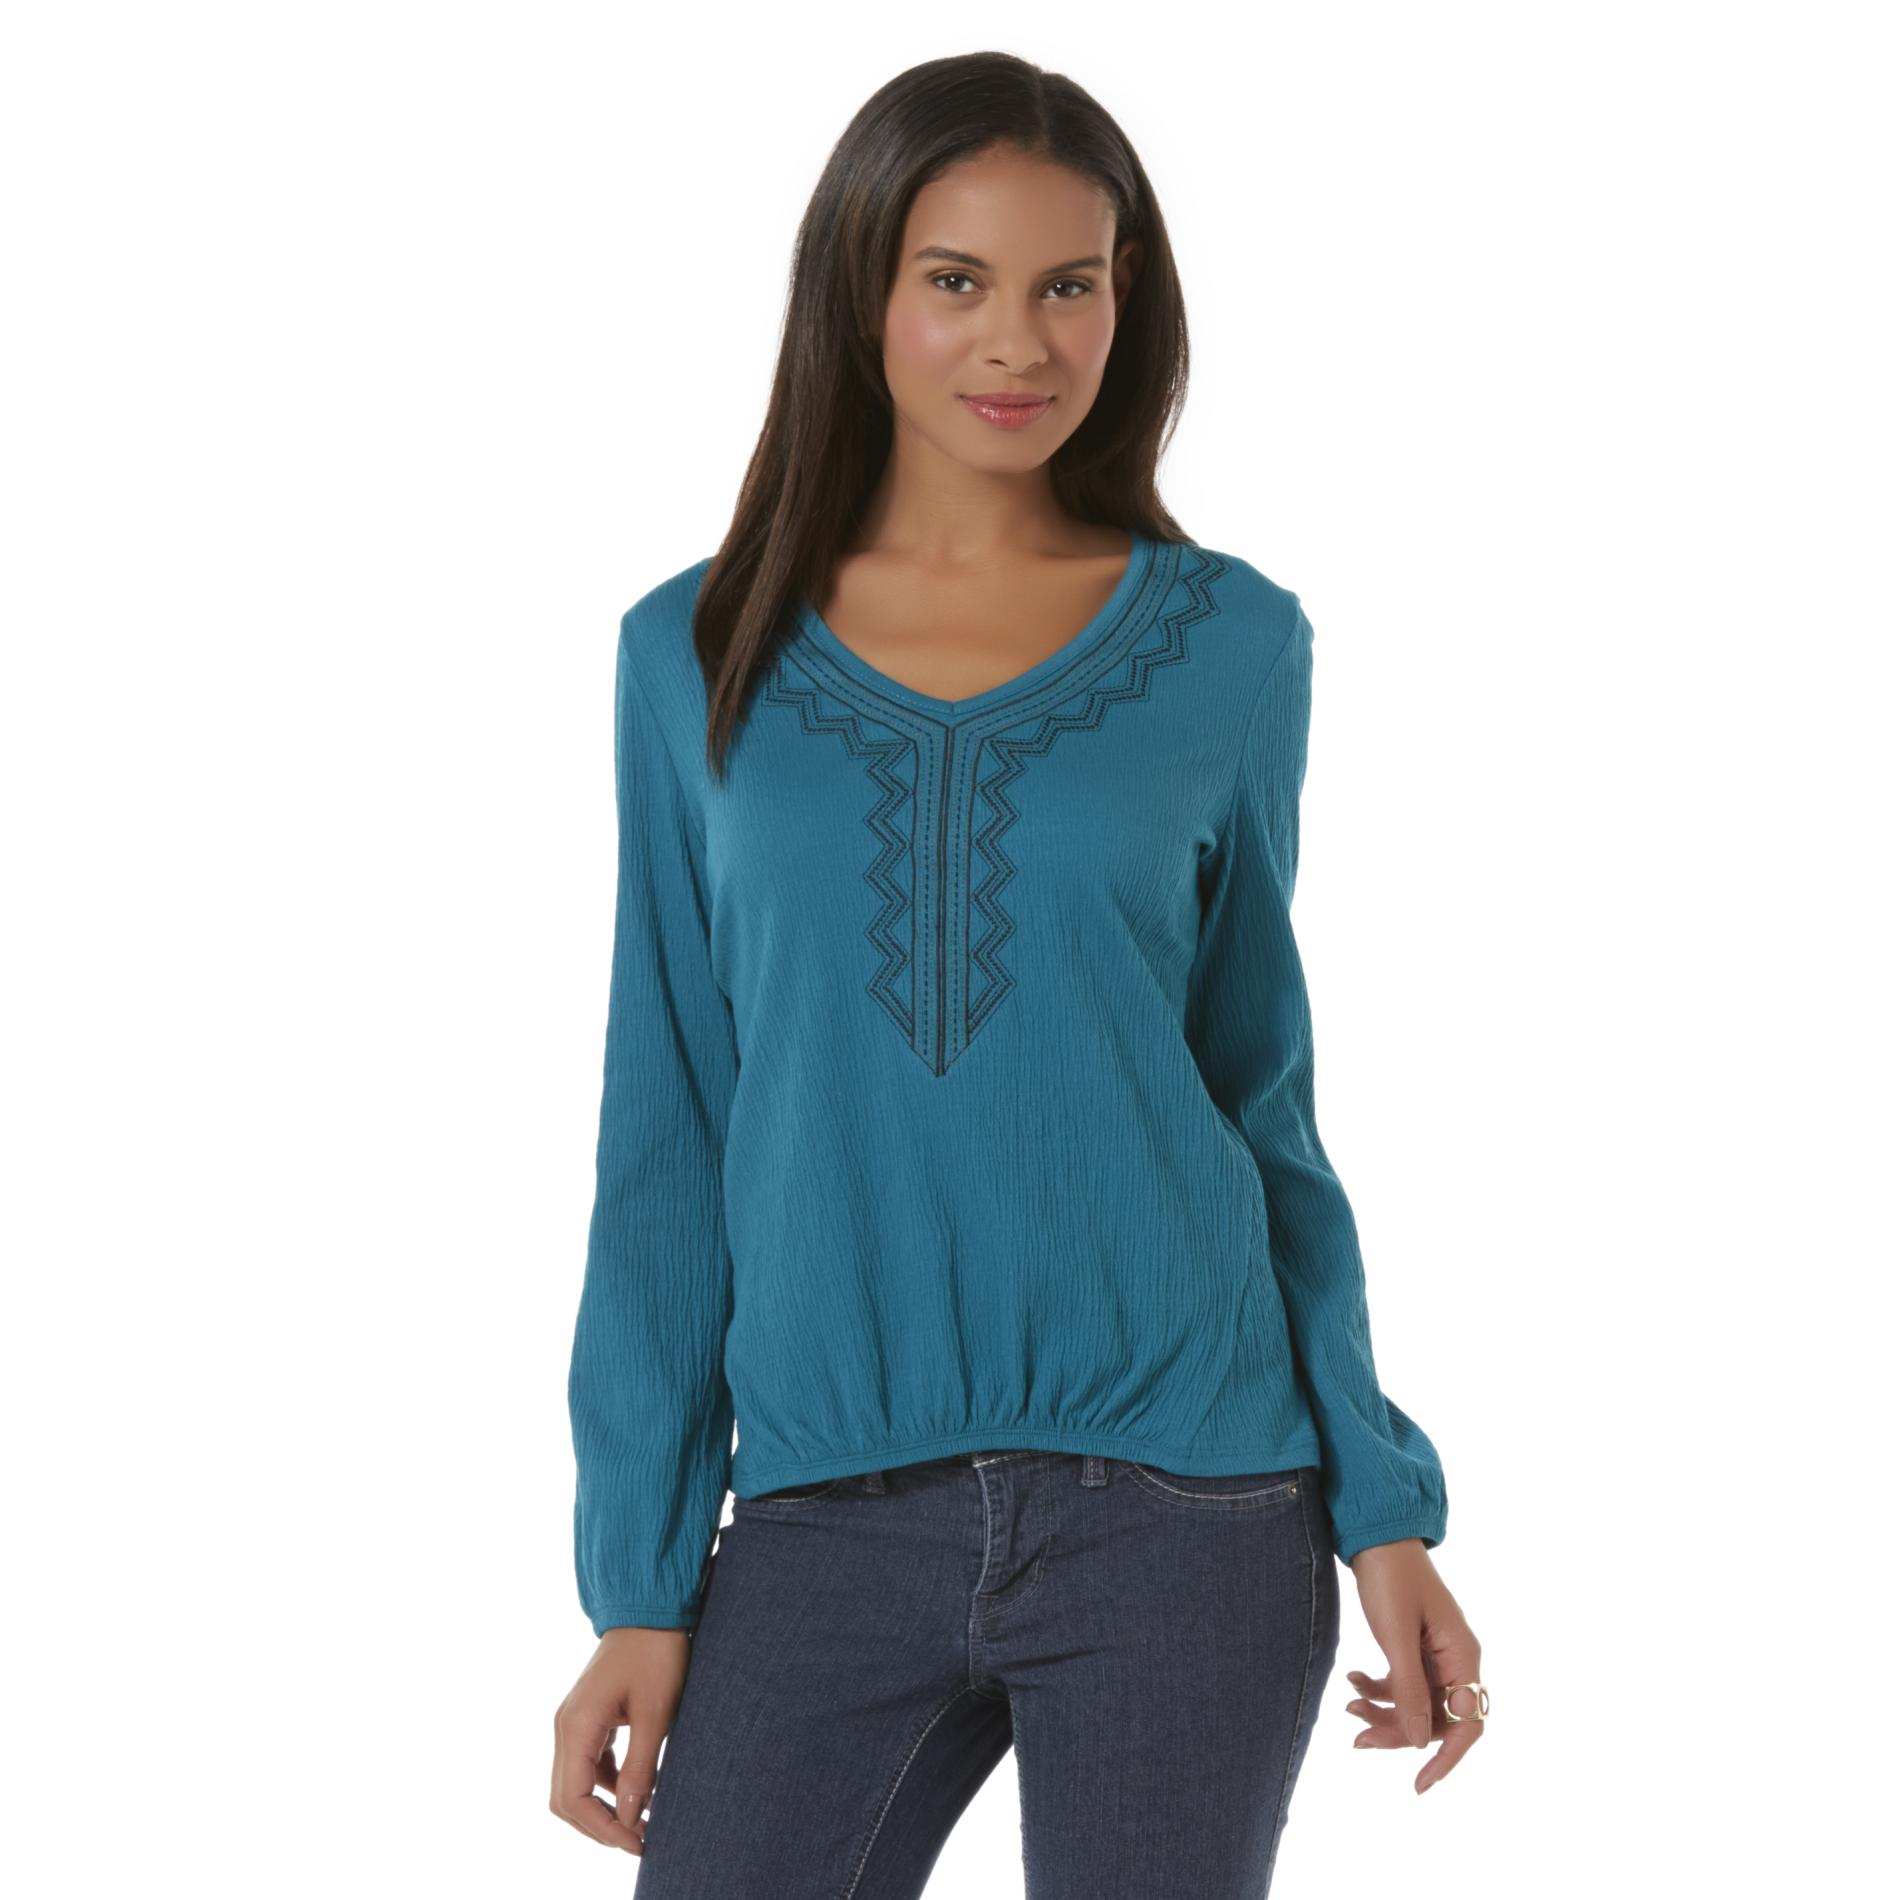 Canyon River Blues Women's Embroidered Crinkle Knit Top - Tribal